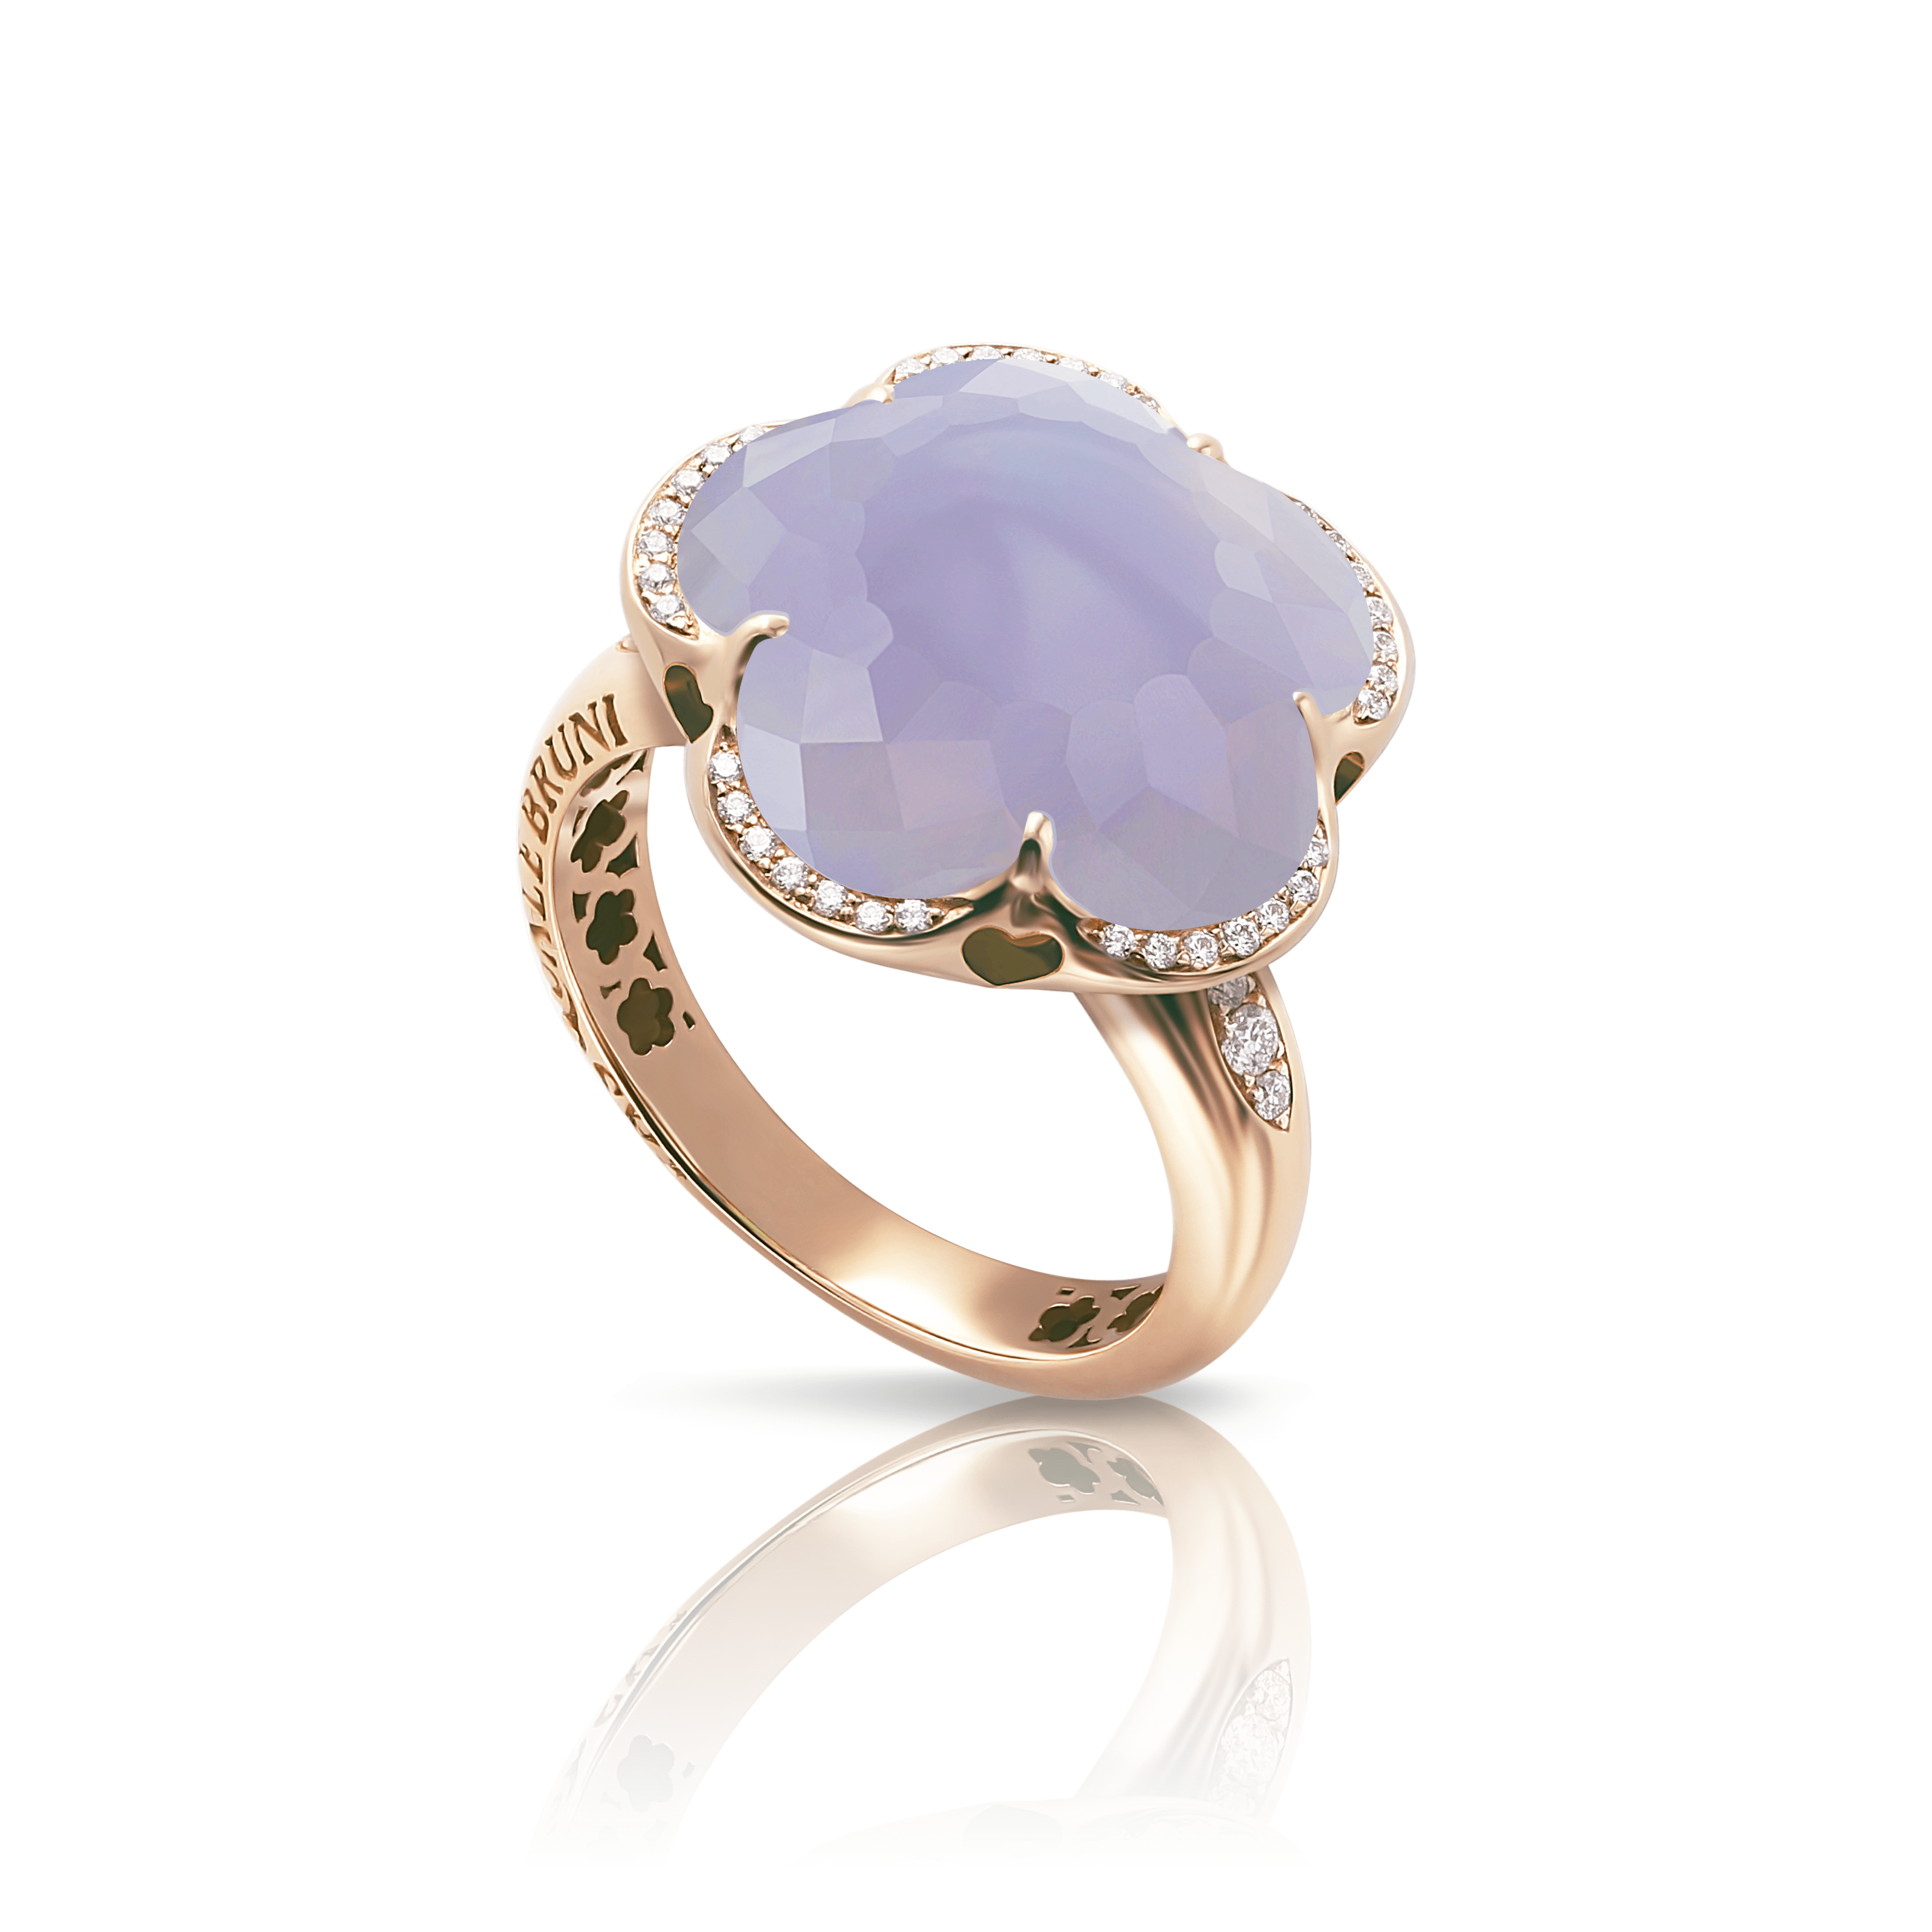 18k Rose Gold Bon Ton Ring with Blue Chalcedony and Diamonds